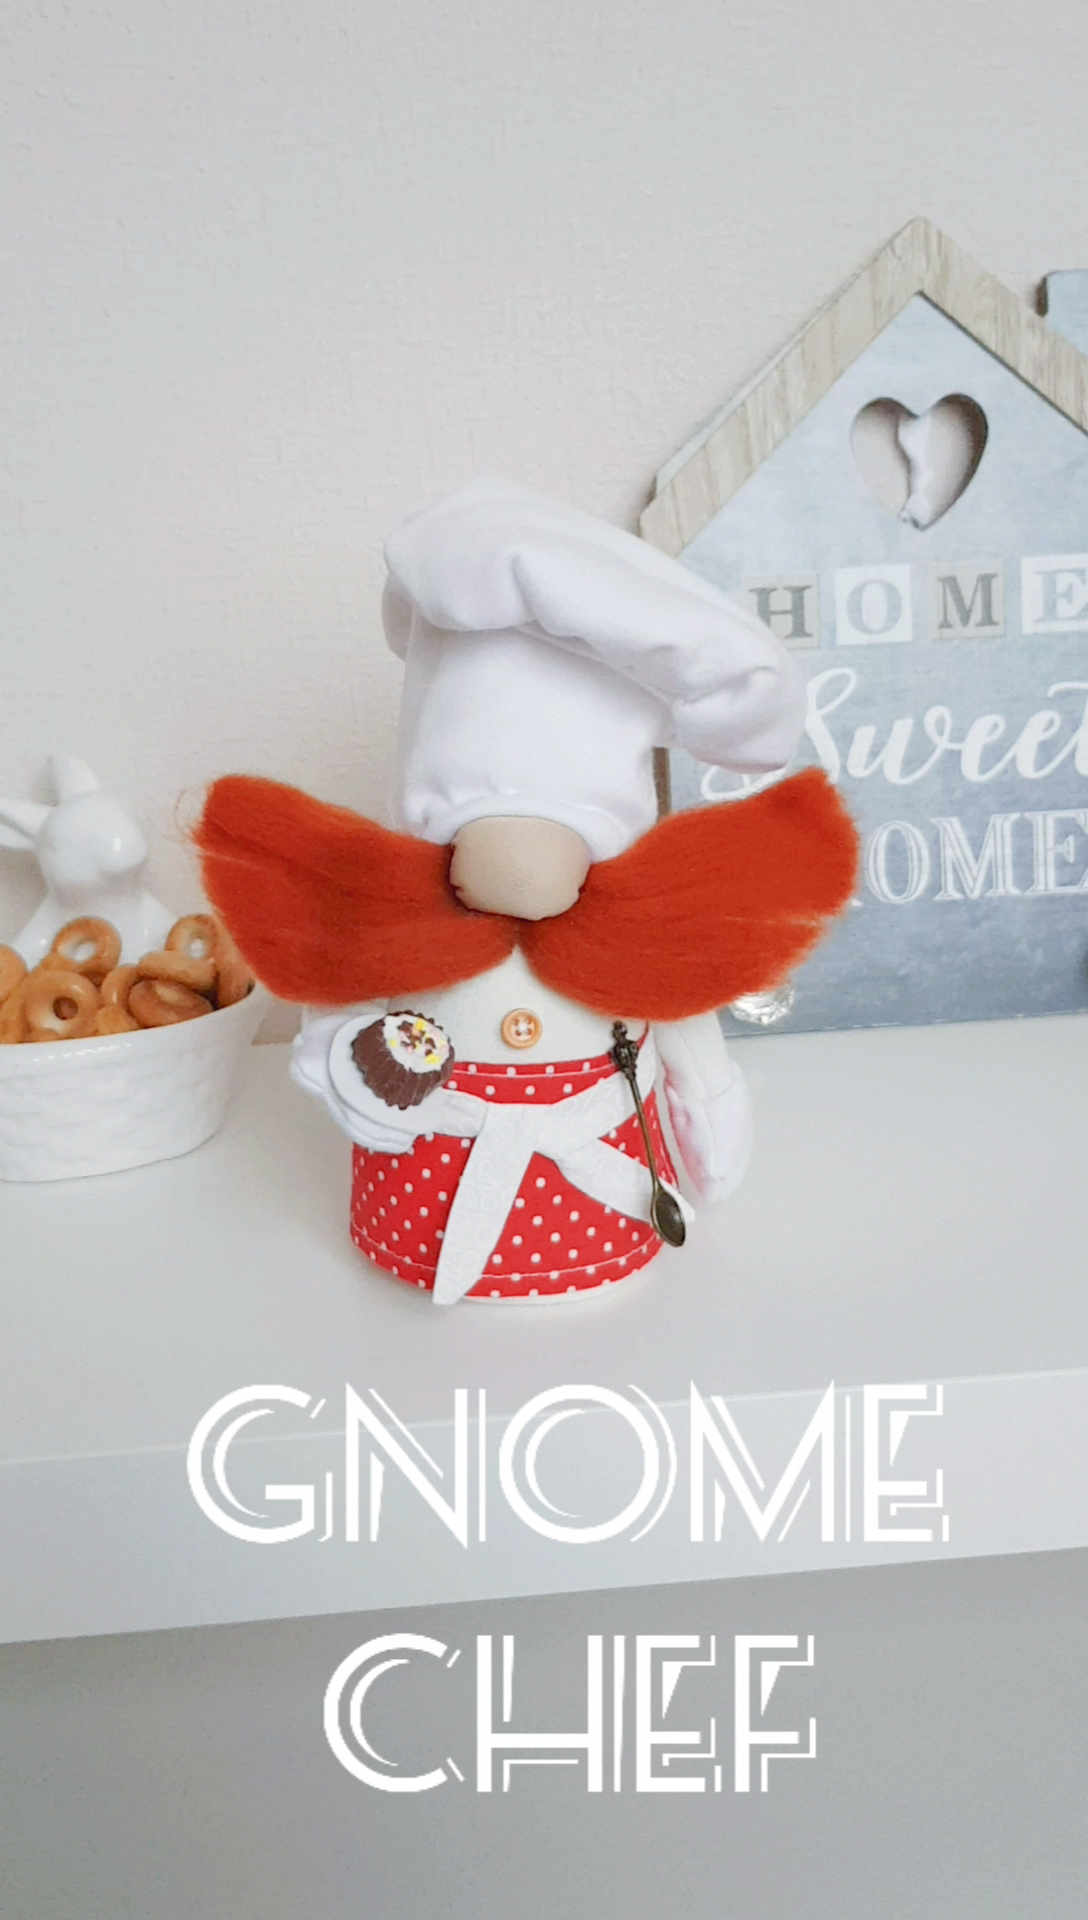 Gnome cook / Chef gnomes / Gift pastry / Wedding a